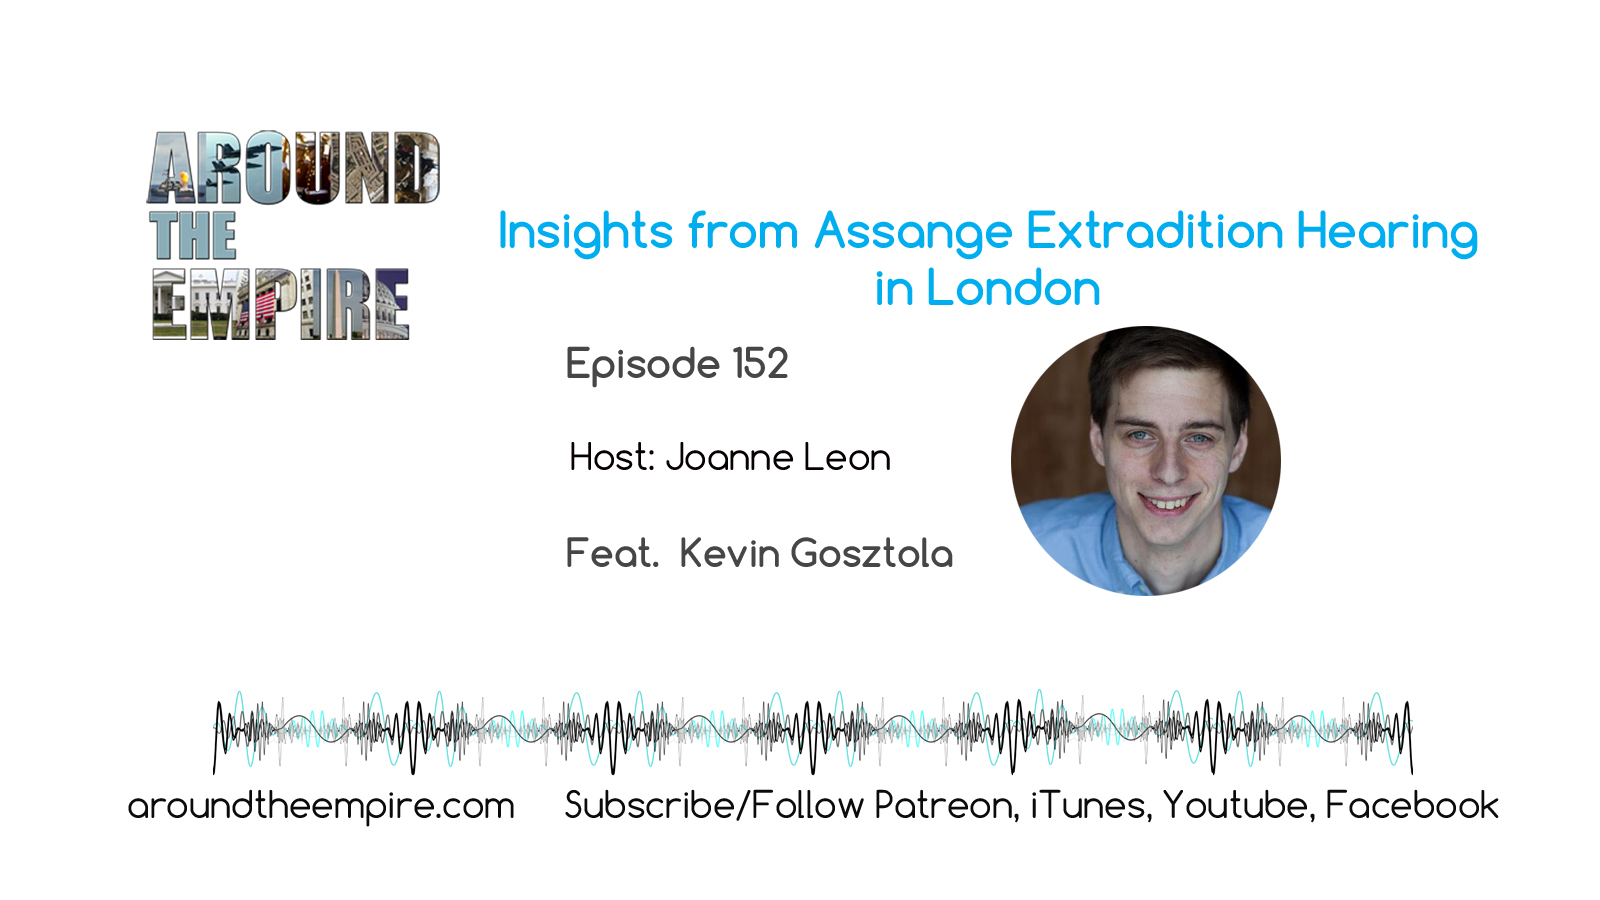 Ep 152 Insights on Assange Extradition Hearing from London feat Kevin Gosztola